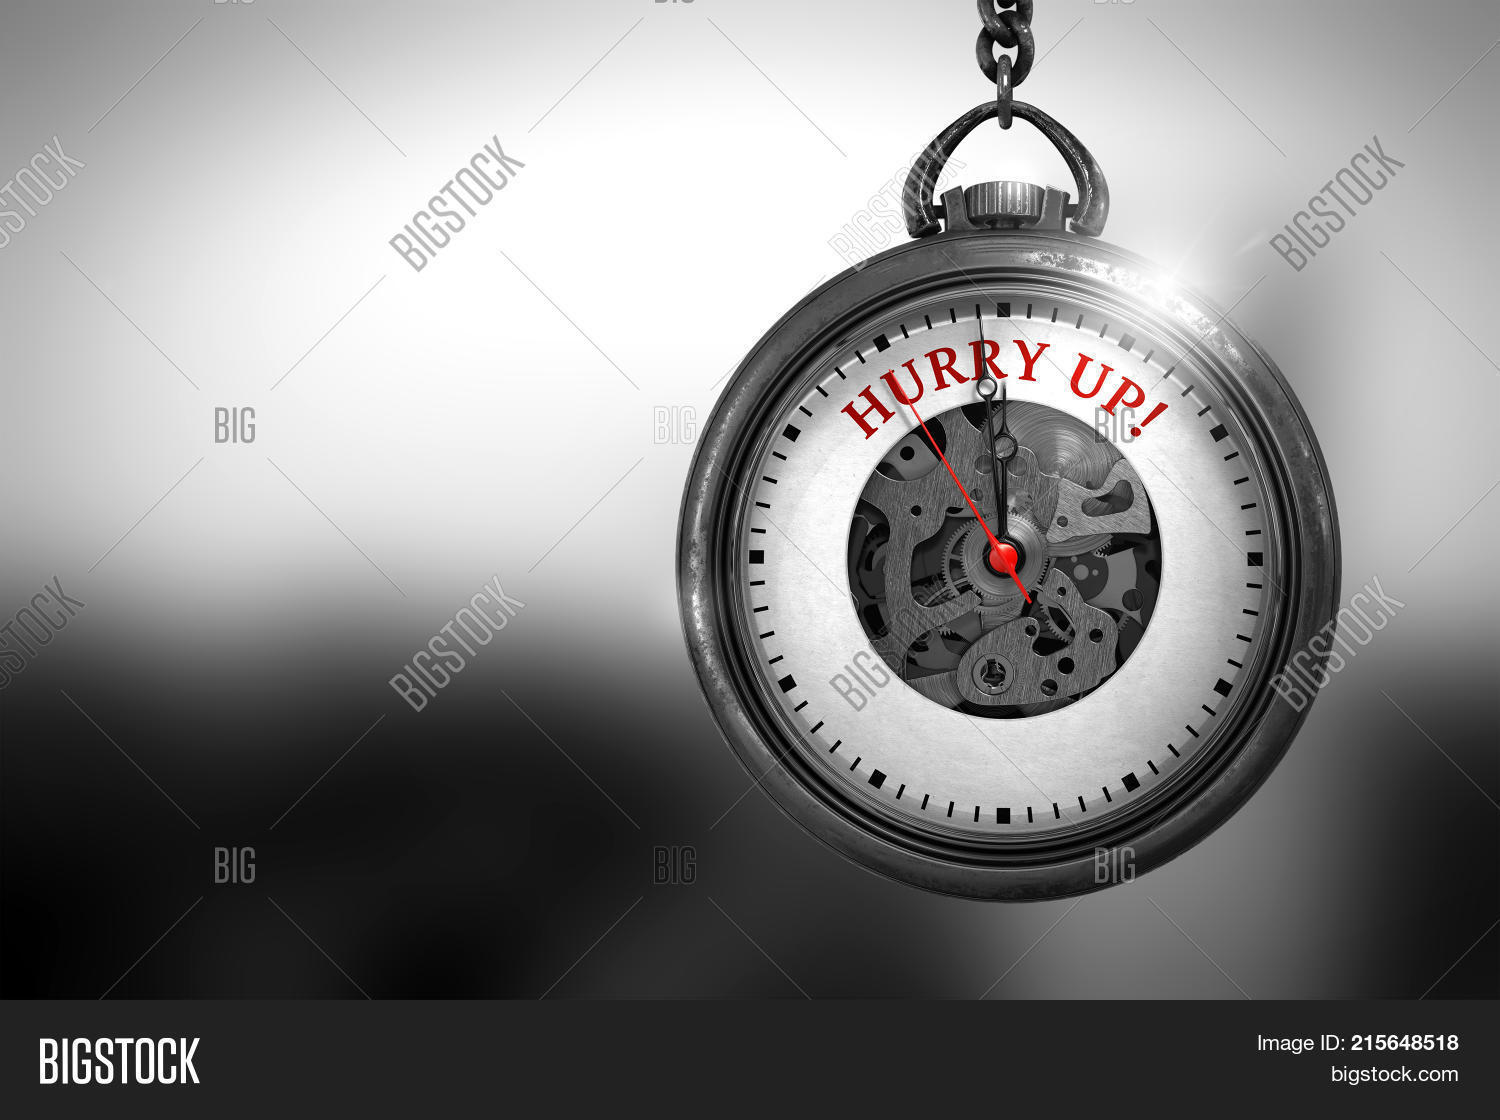 Vintage Pocket Watch With Hurry Up Text On The Face Business Concept